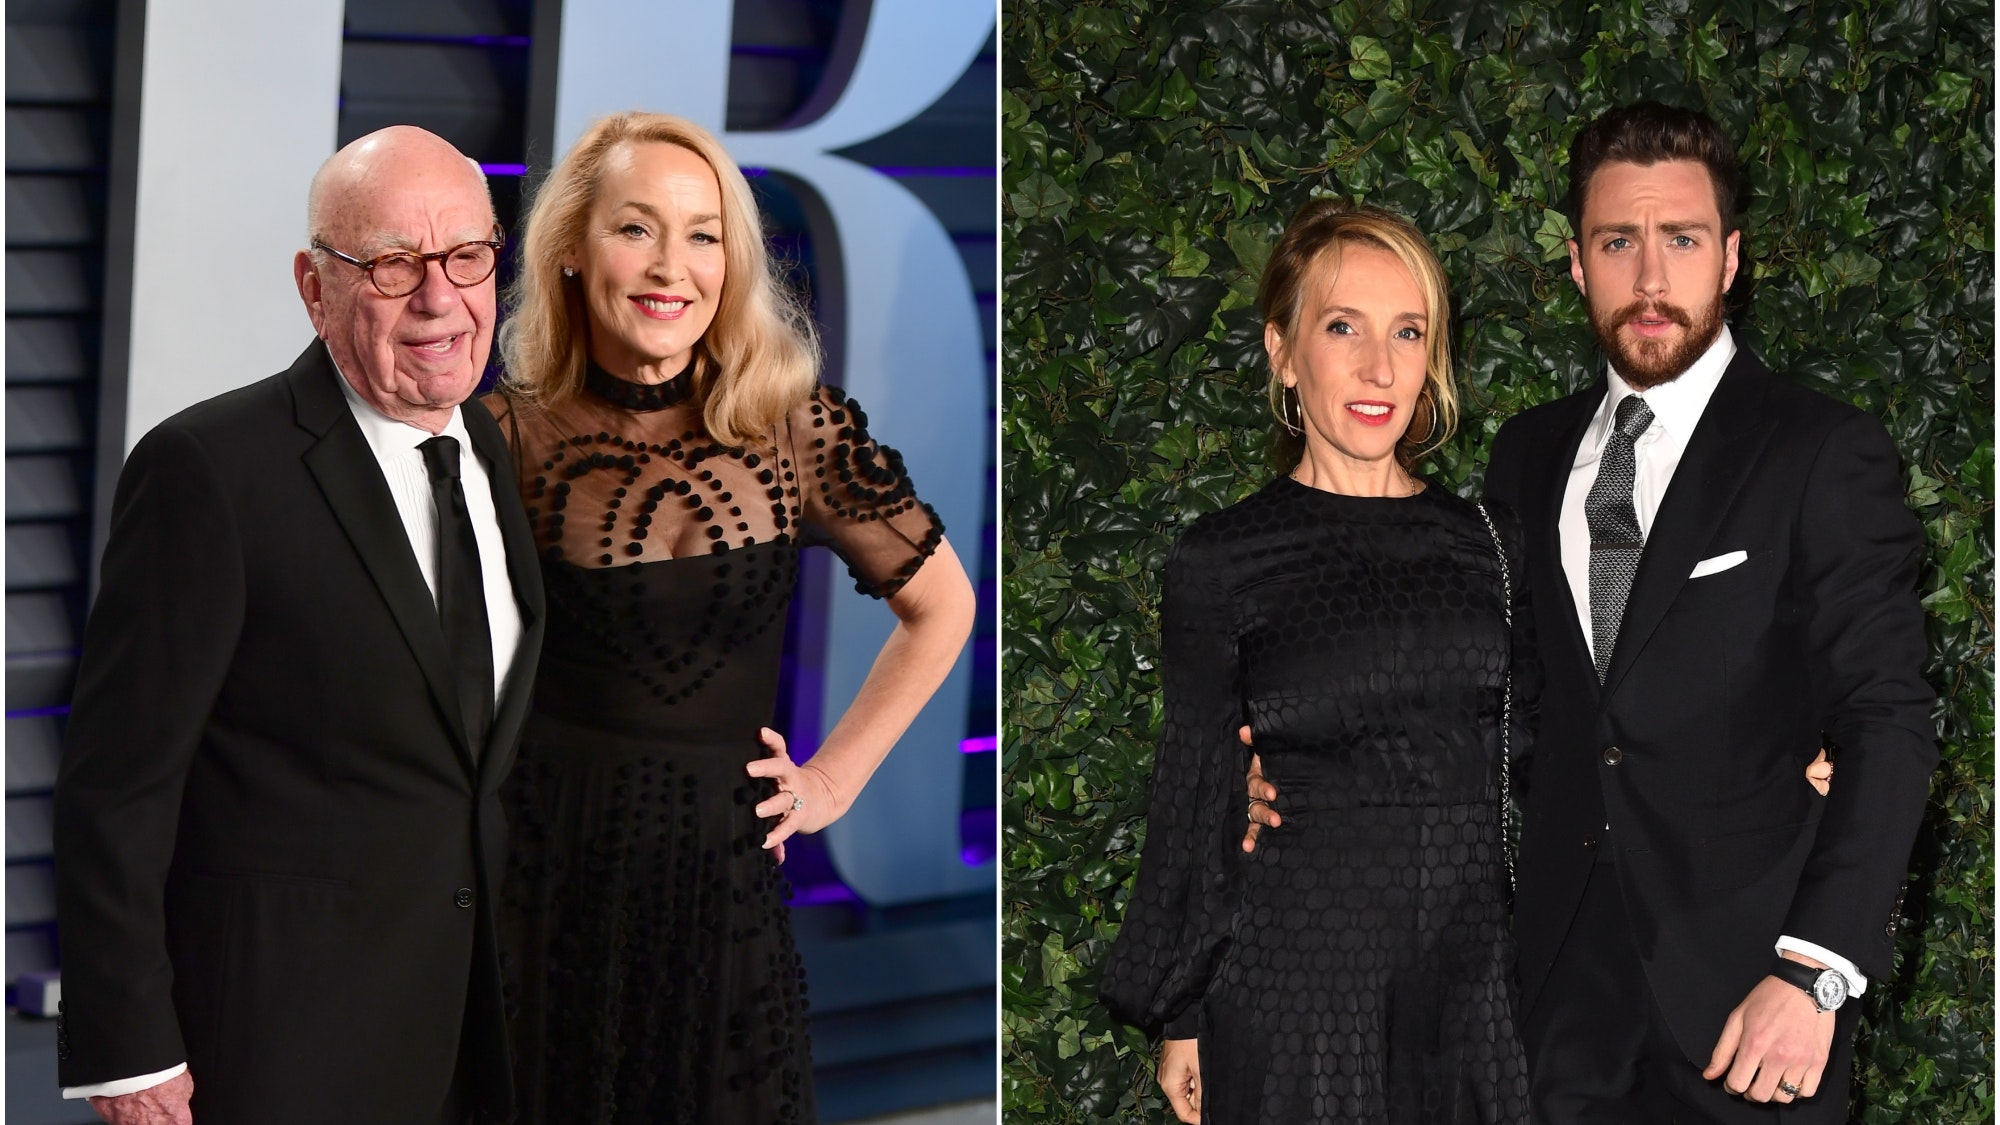 Mind the (age) gap! Celebrity couples with years between